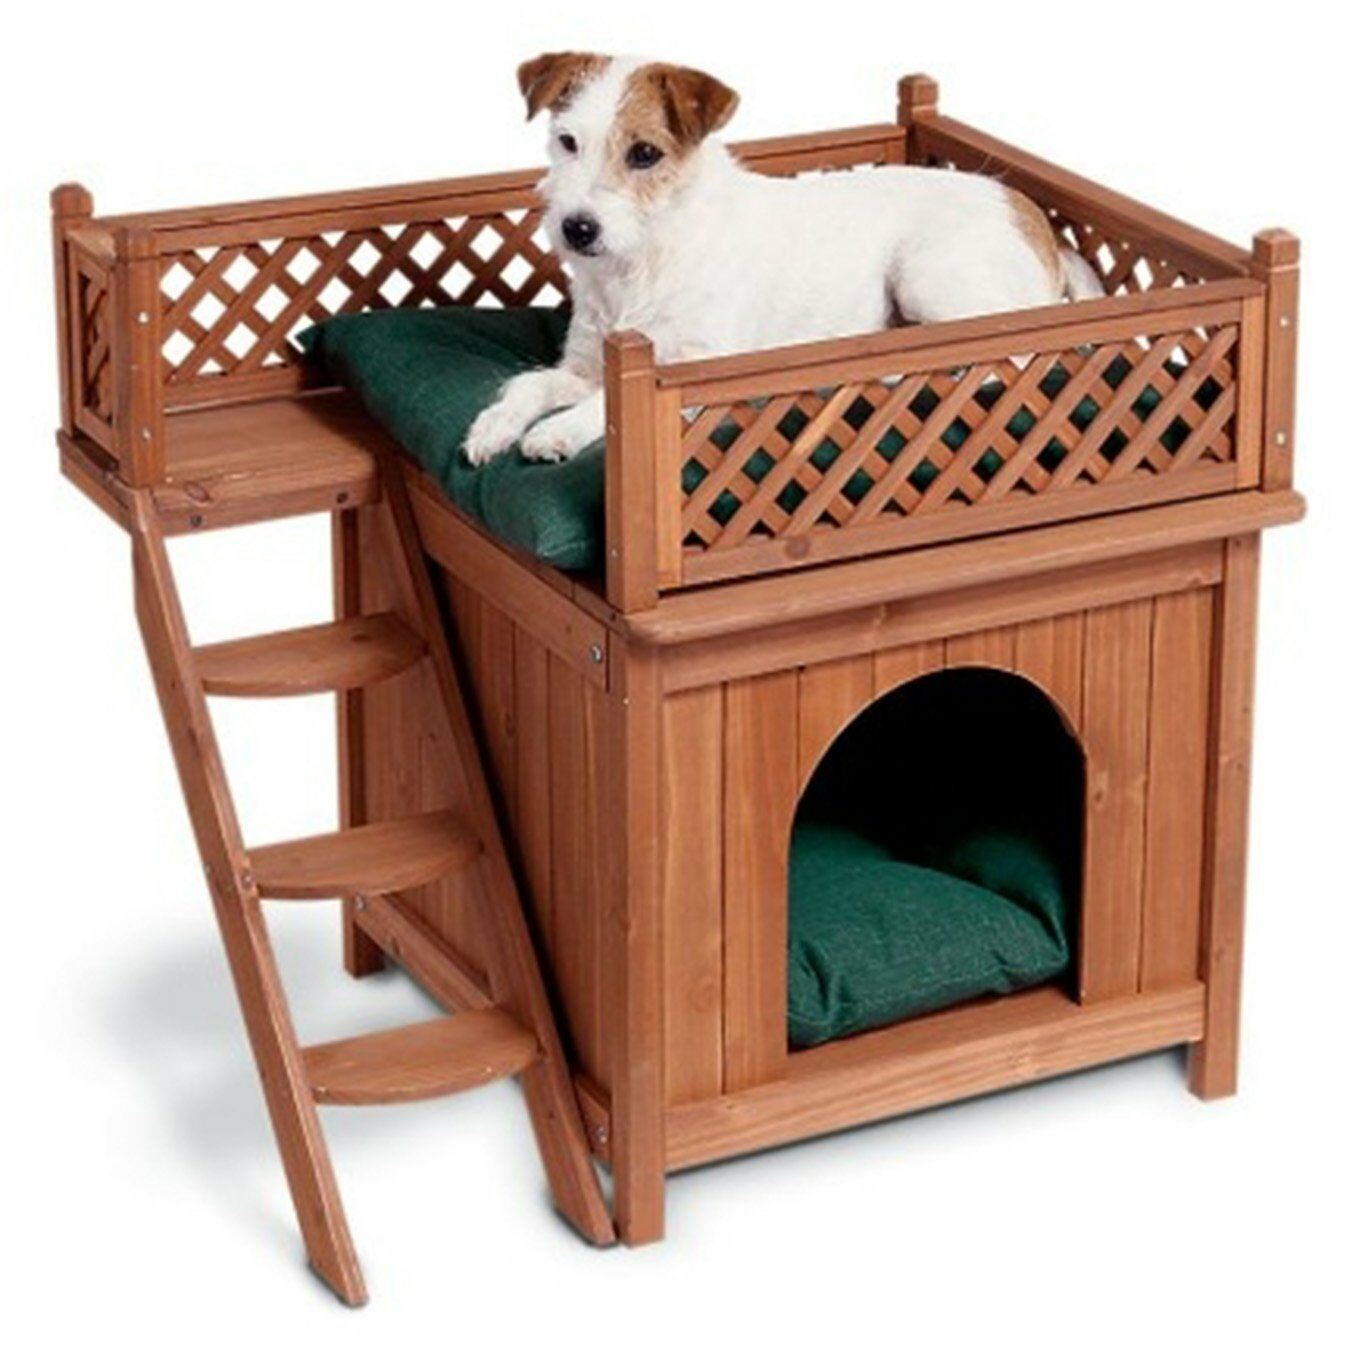 Wooden Dog Pet House Cat Room Puppy Large Kennel Indoor ...